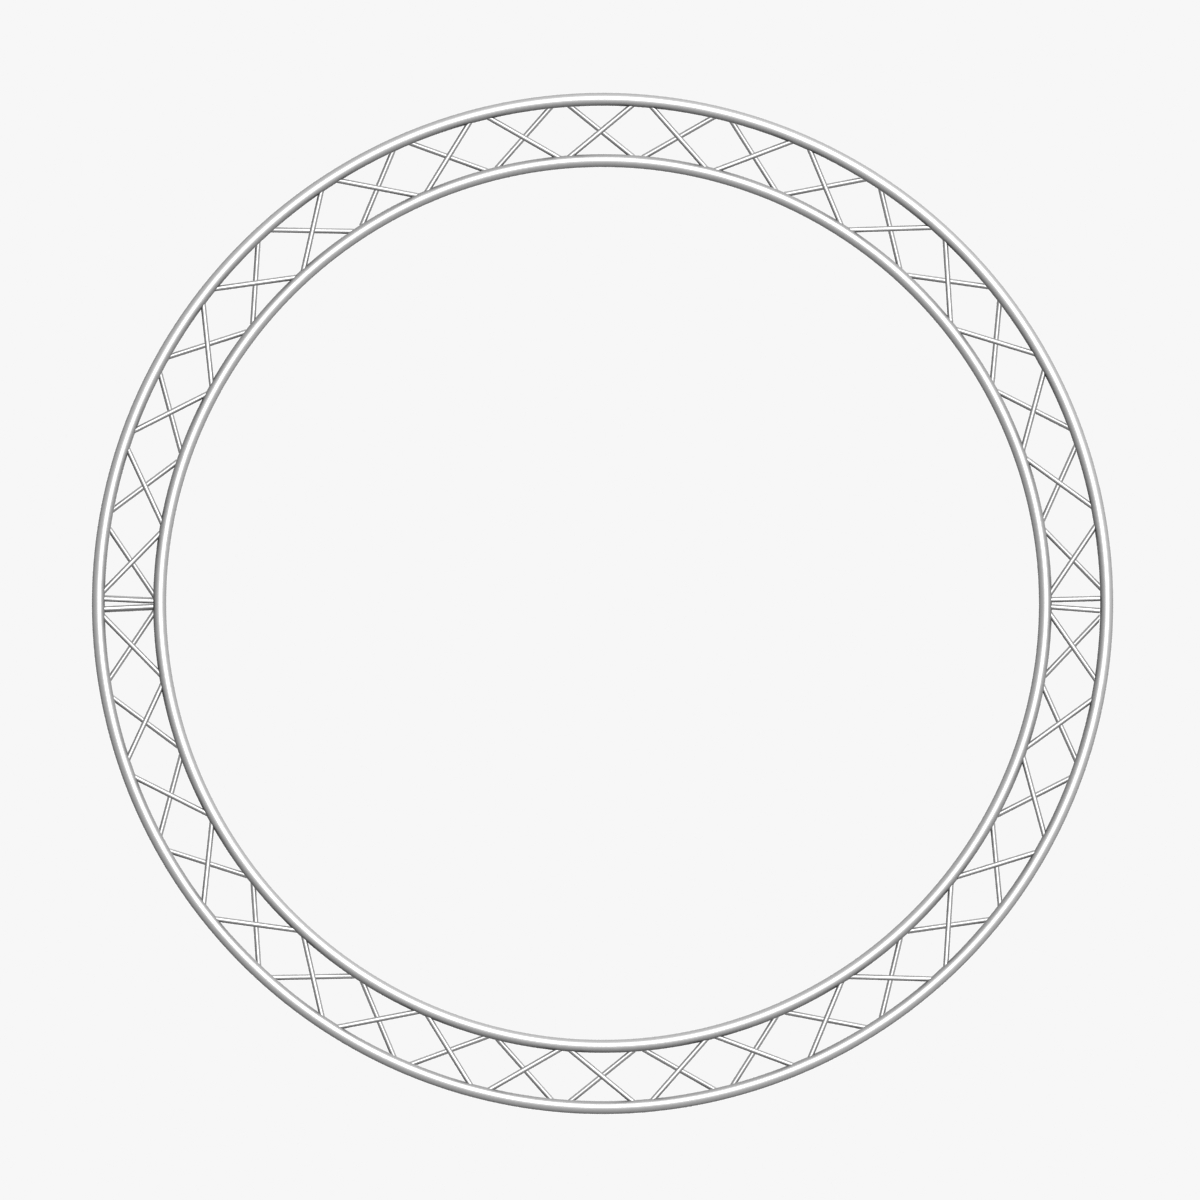 circle square truss (400cm) 3d model max fbx obj 218633